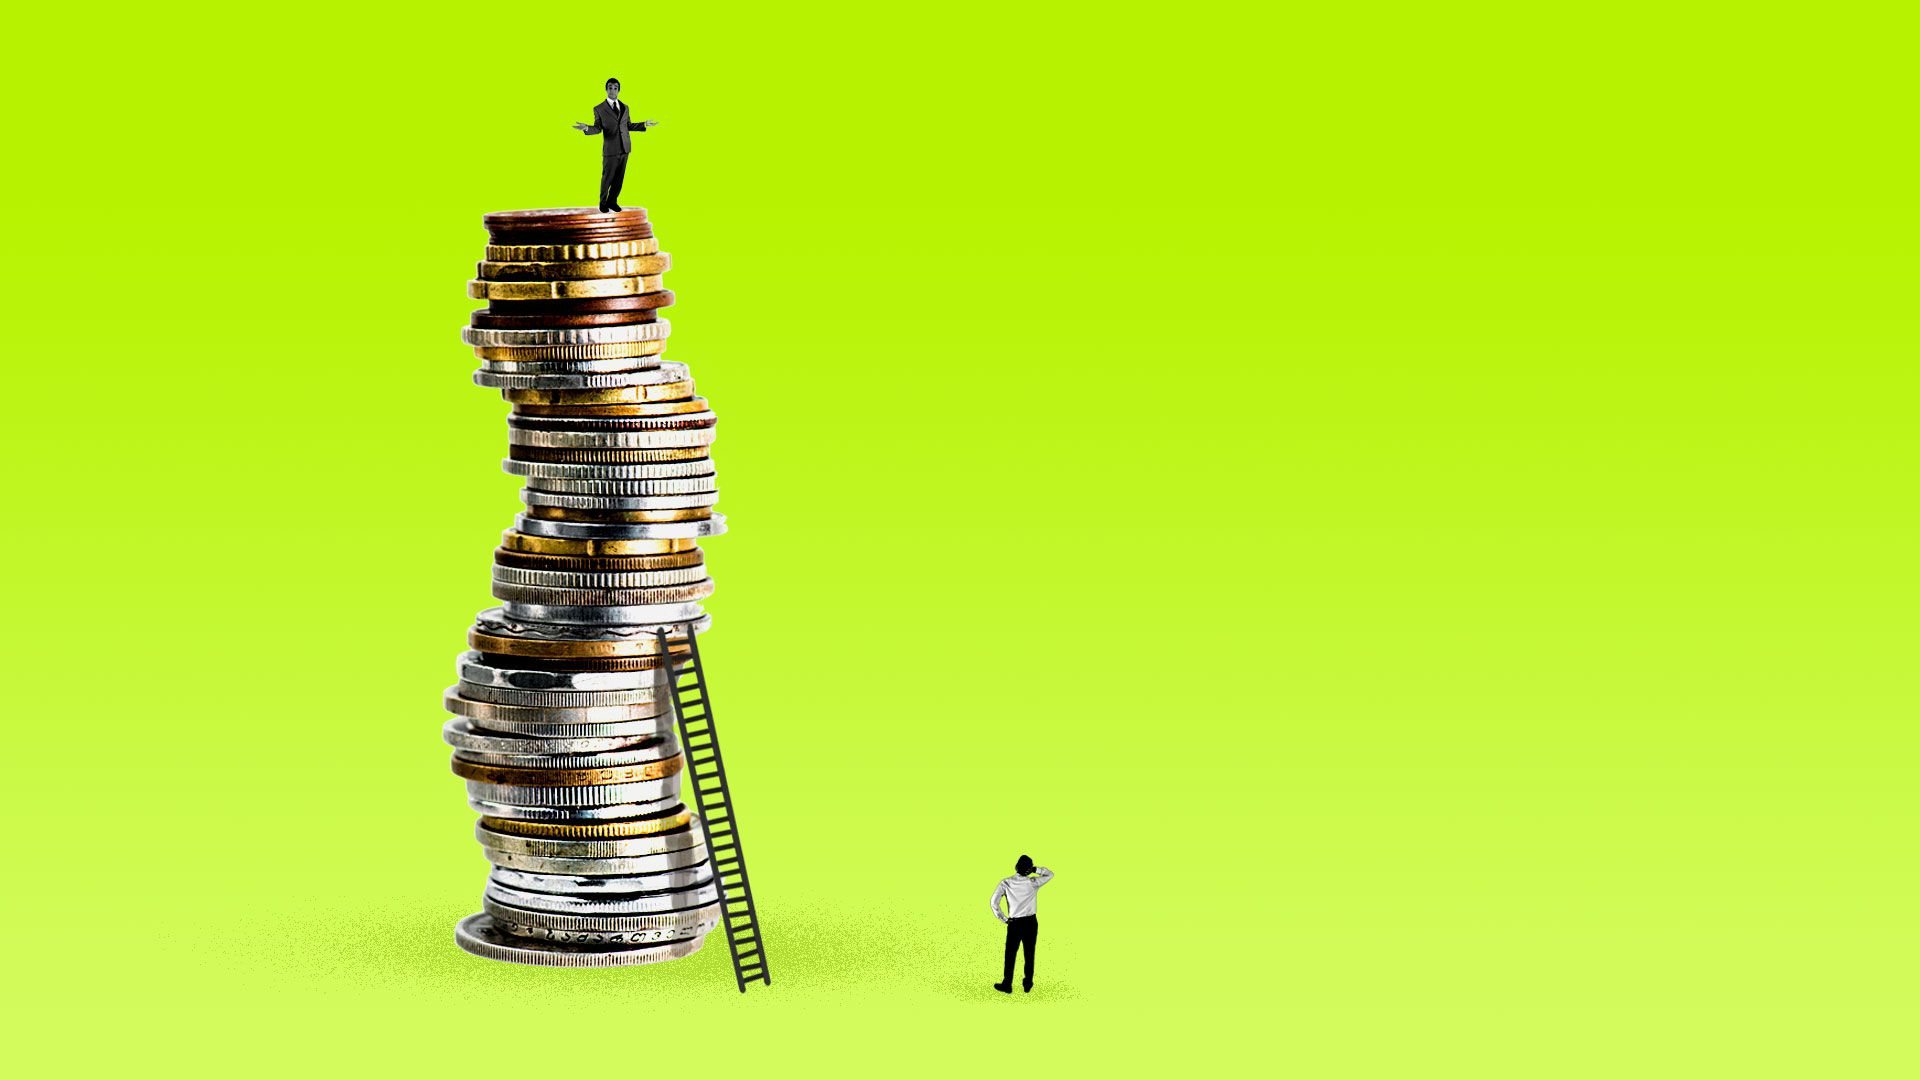 A man standing on a large pile of coins with another man trying to reach him with an inadequate ladder